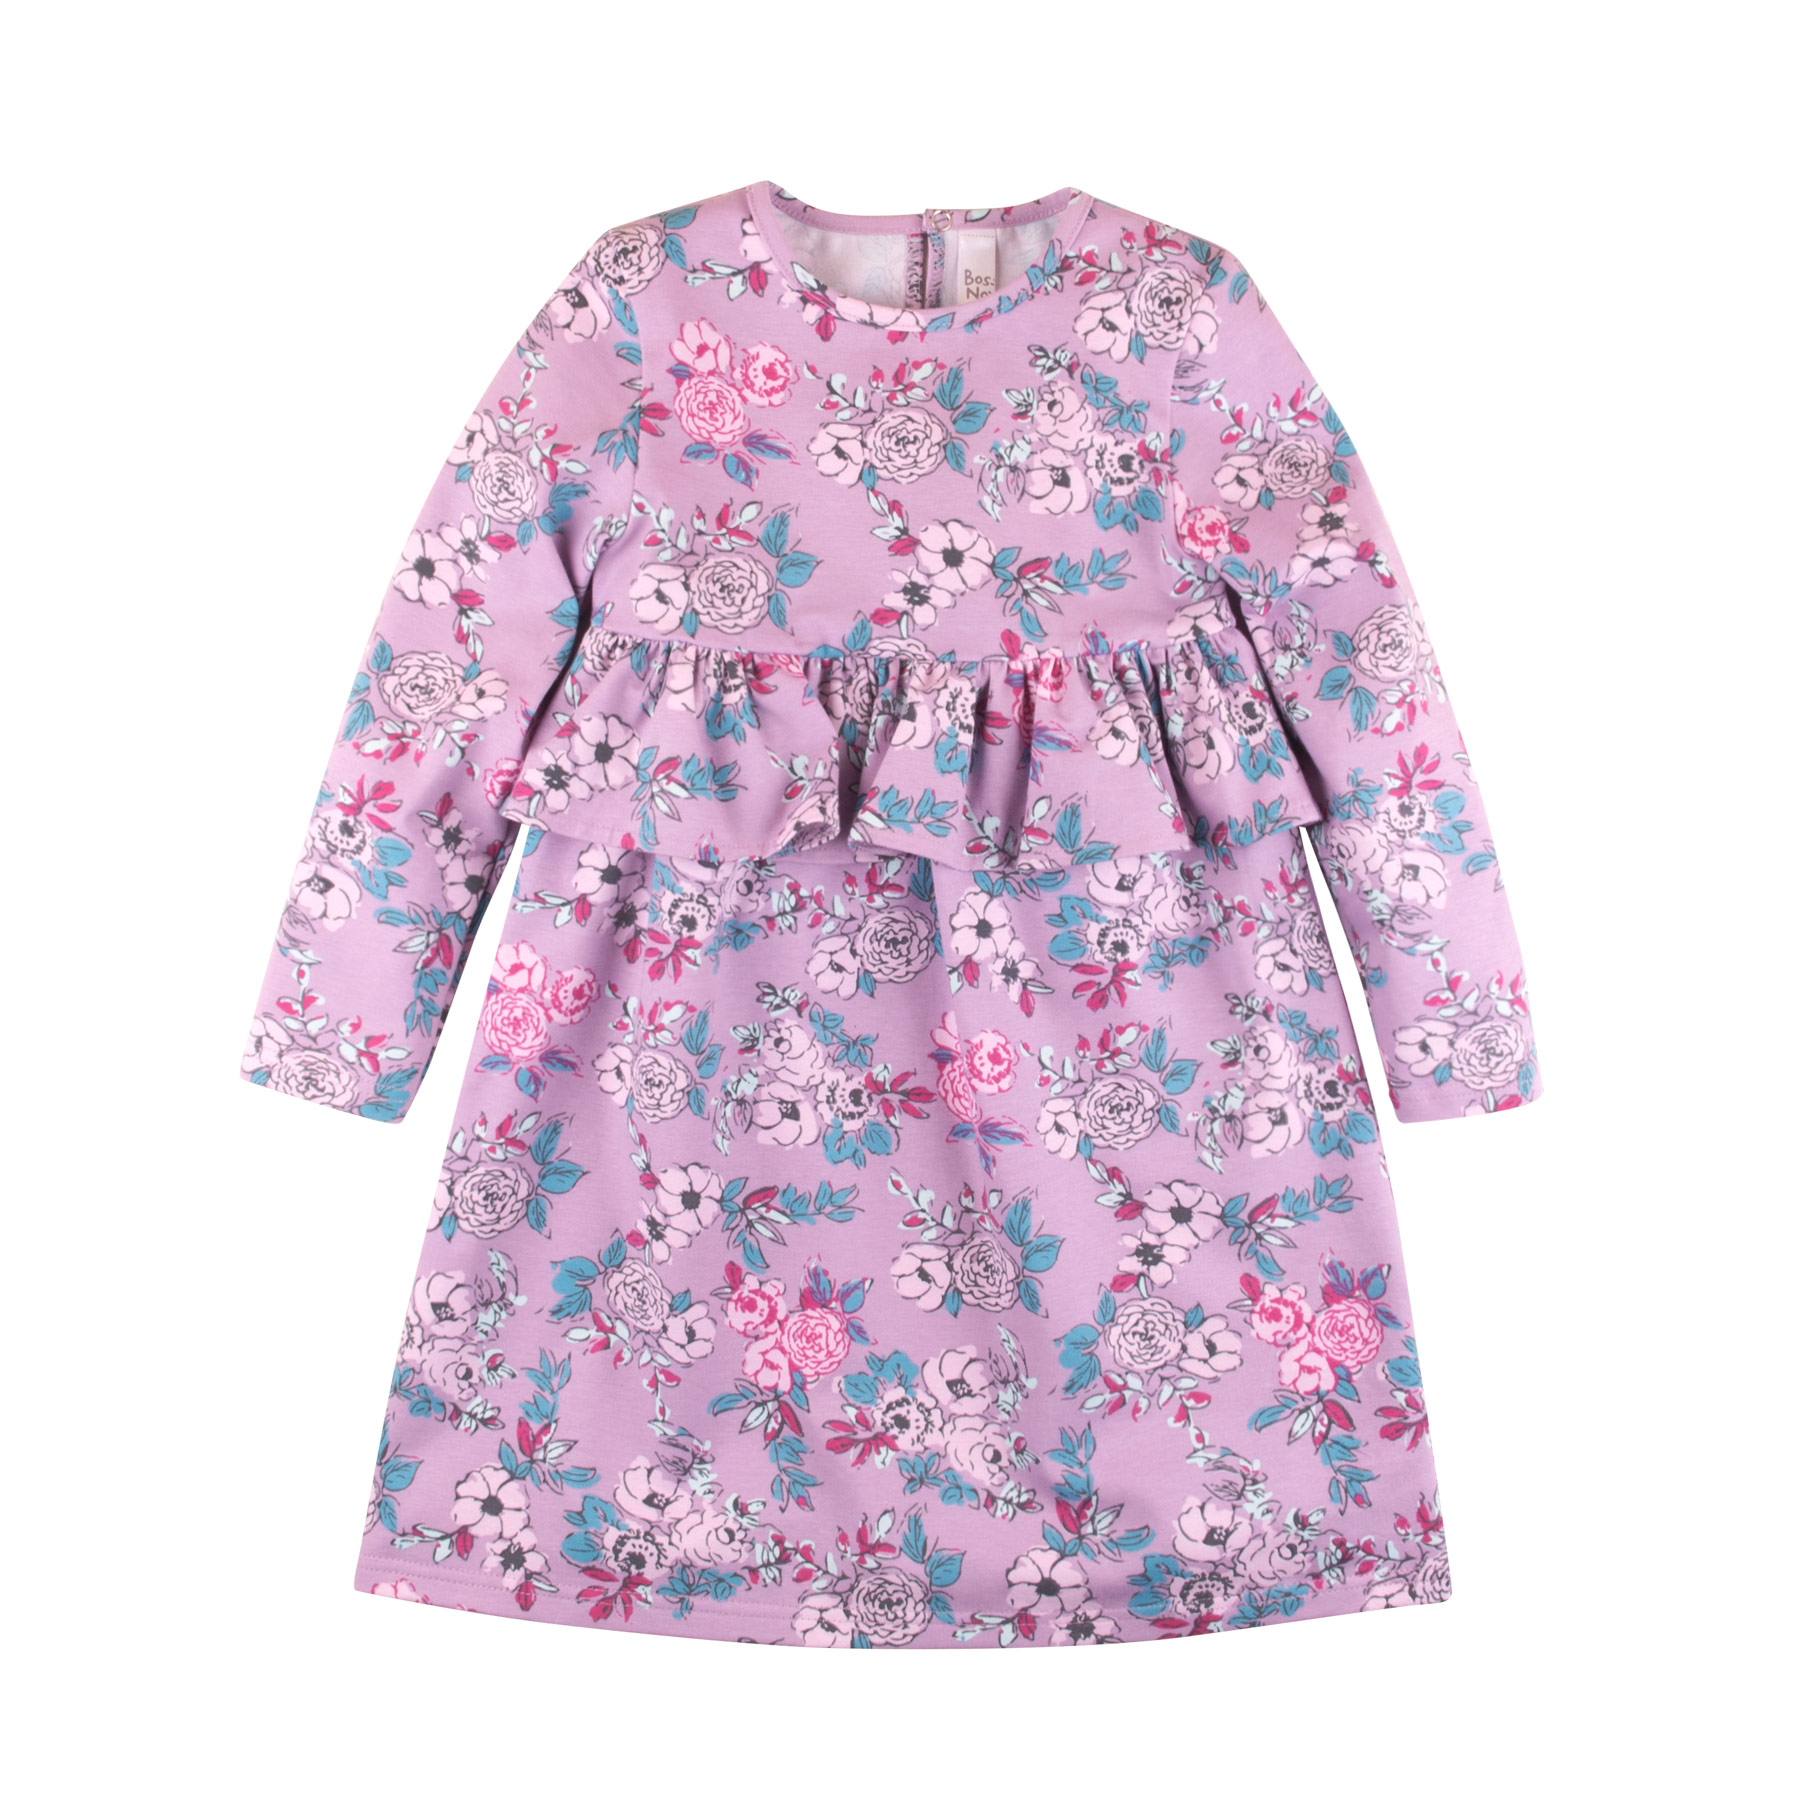 Dresses BOSSA NOVA 163M-187c Maya baby dress for a girl tunic clothes clothing Cotton